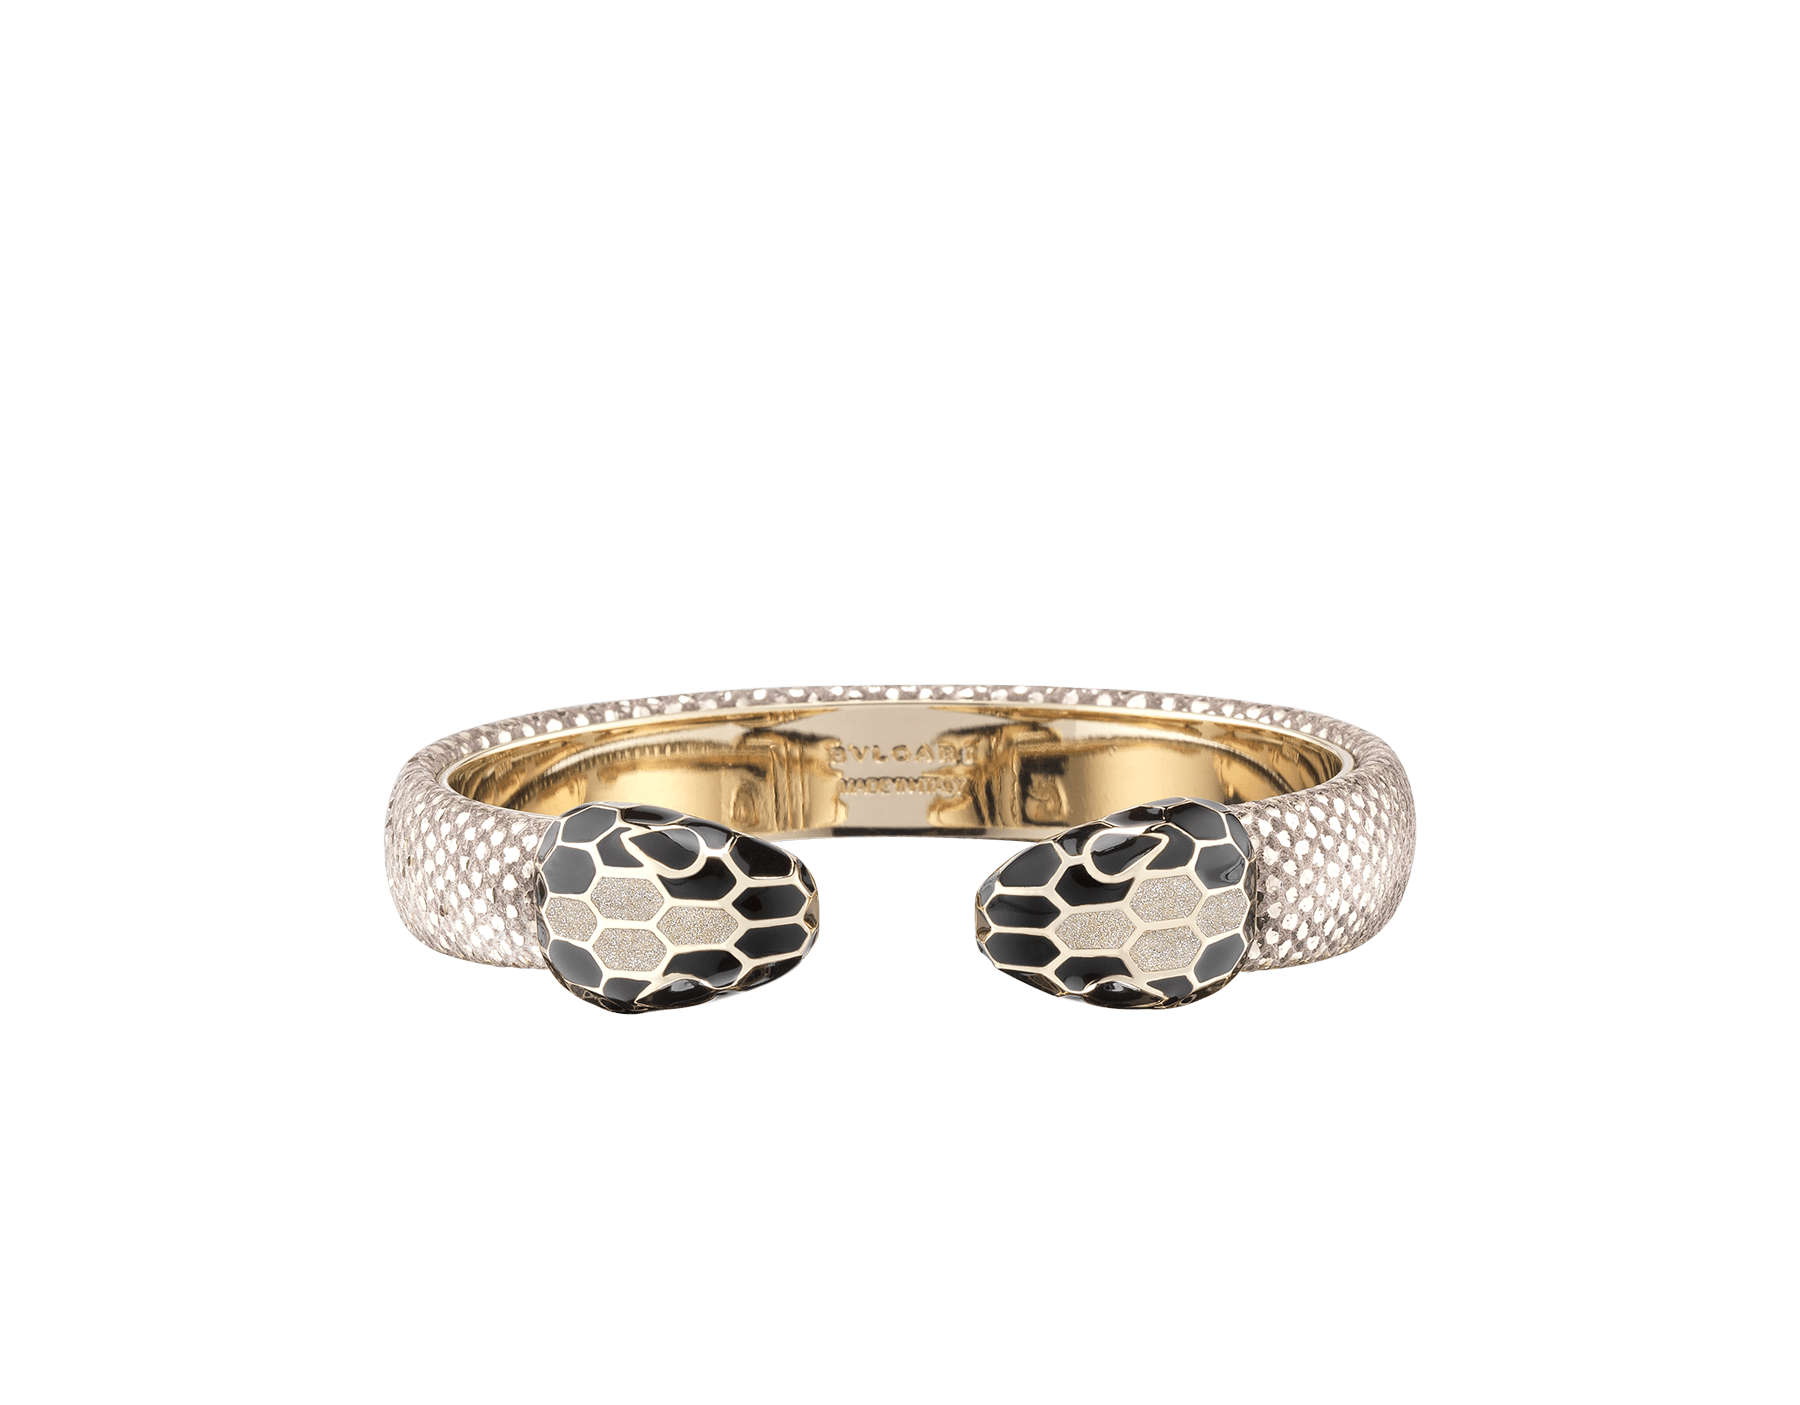 Serpenti Forever bangle bracelet in milky opal metallic karung skin, with light gold-plated brass hardware. Iconic contraire snakehead décor in black and glitter milky opal enamel, with black enamel eyes. 288377 image 1